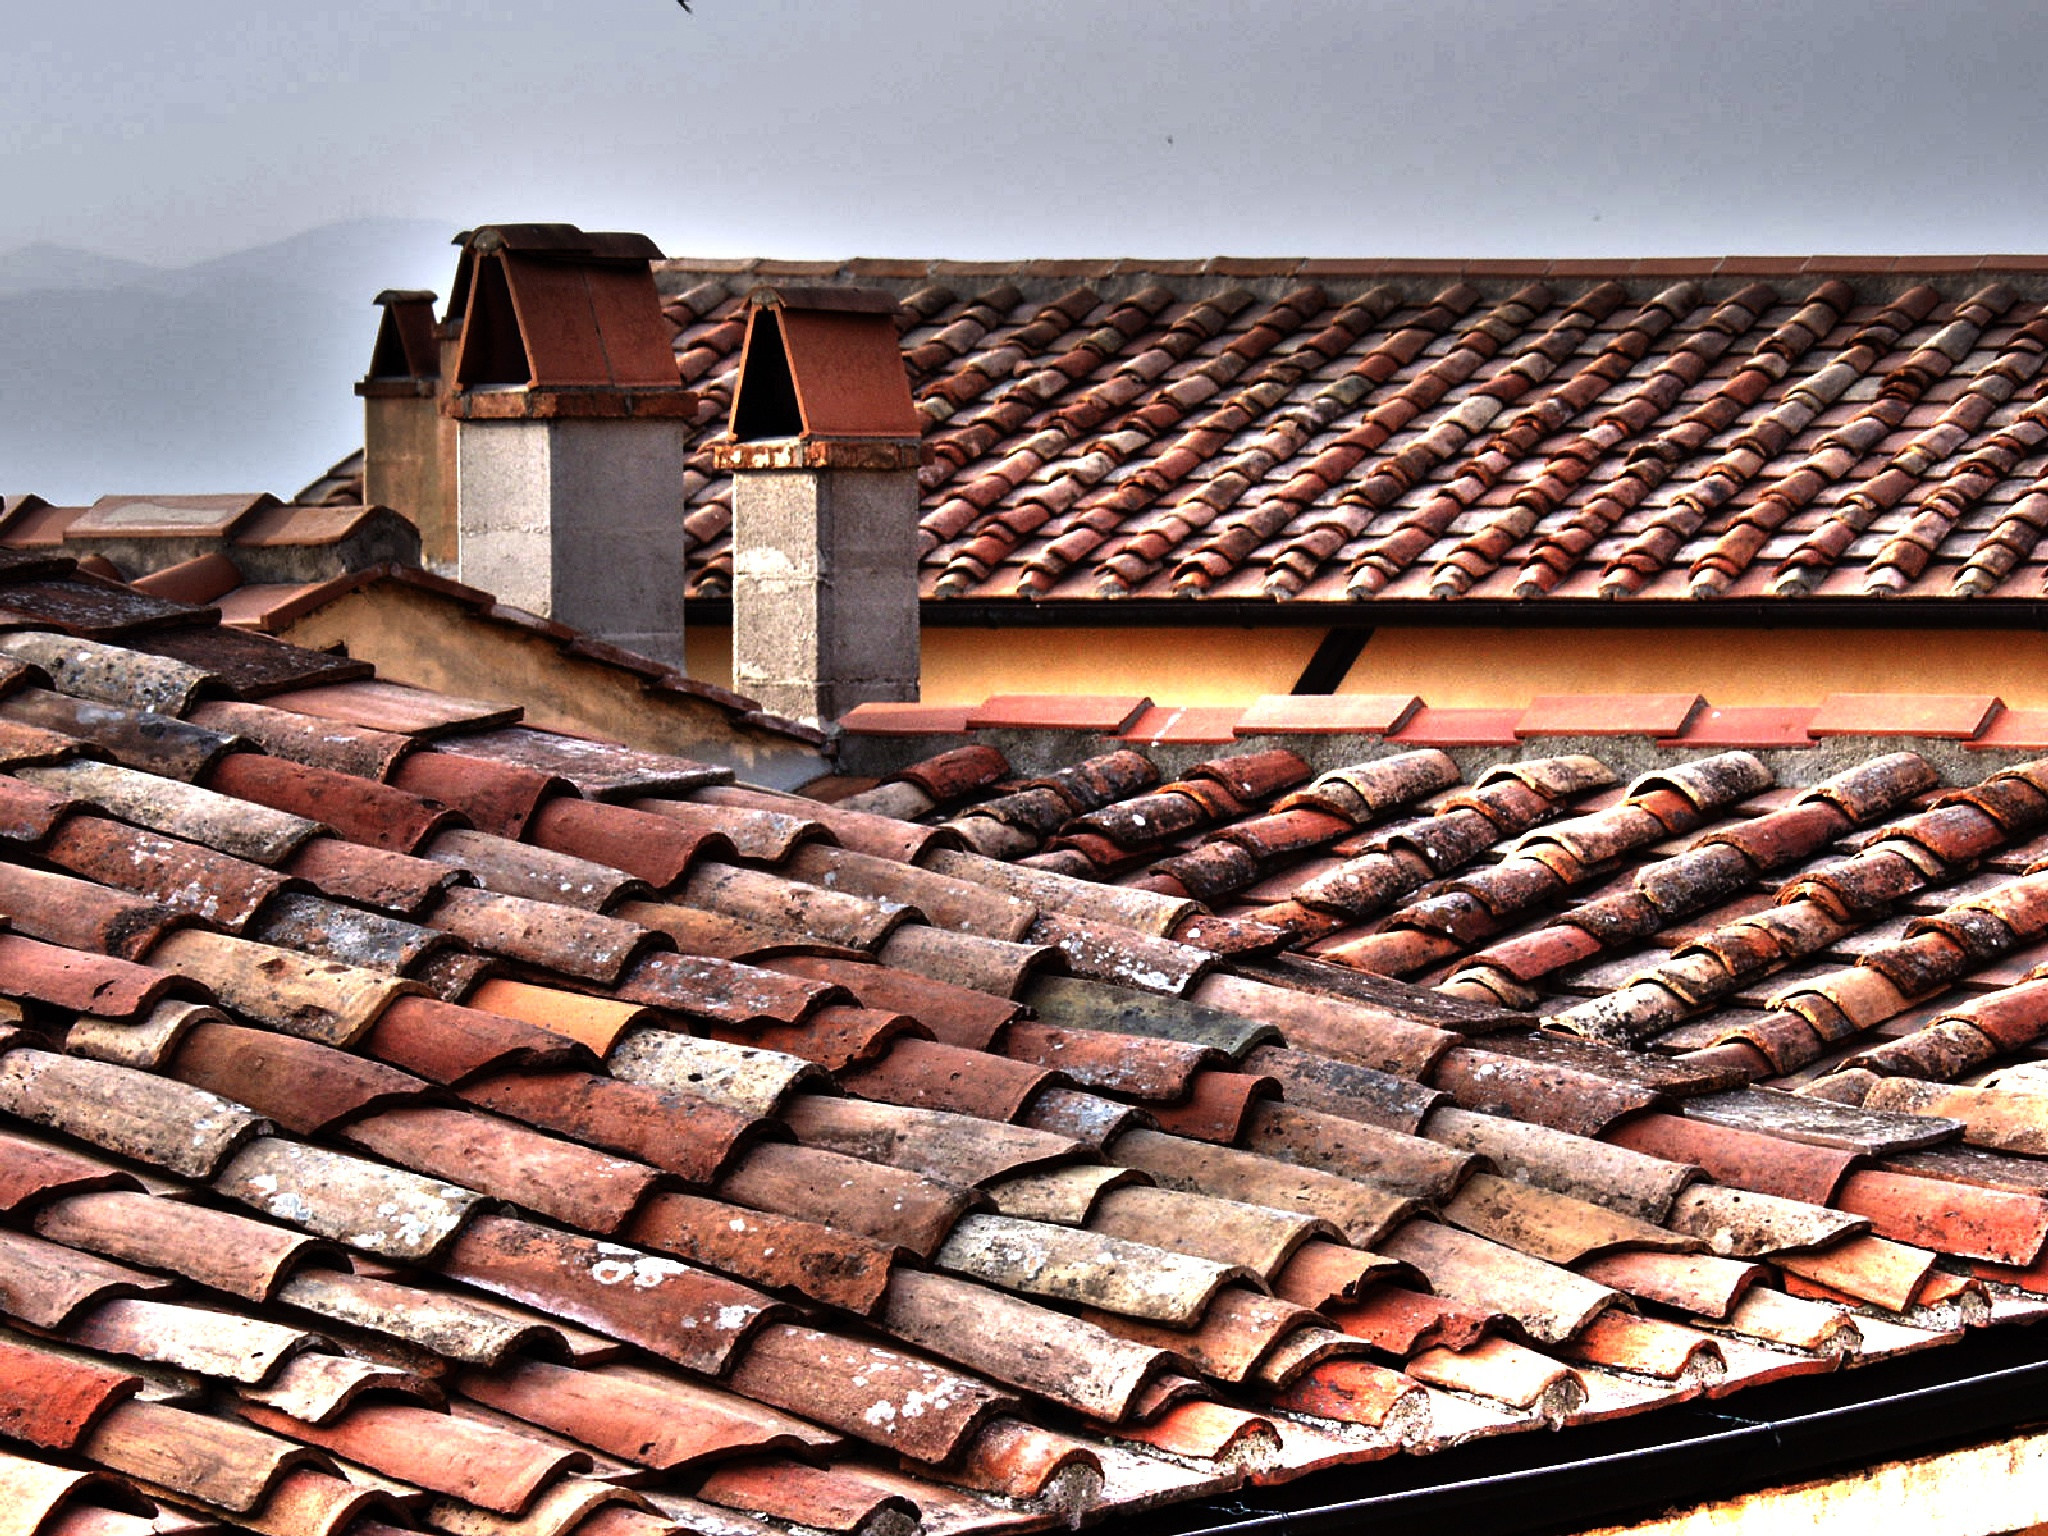 Tuscan Rooftop by Fotoguy